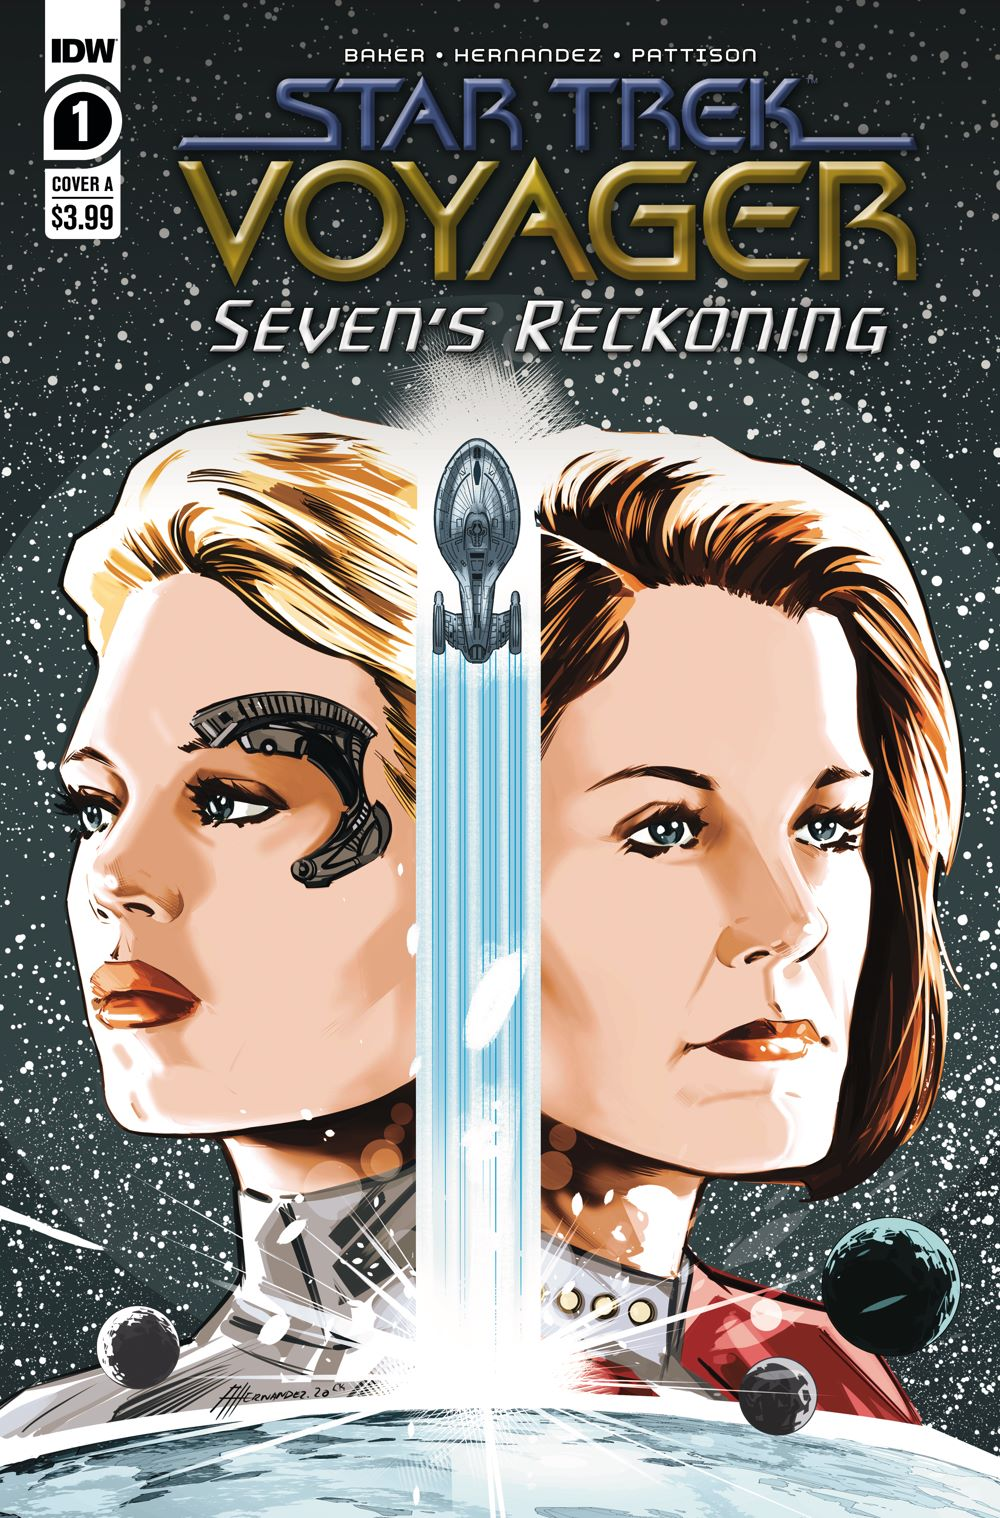 ST_Voyager_SR01-coverA ComicList: IDW Publishing New Releases for 11/18/2020